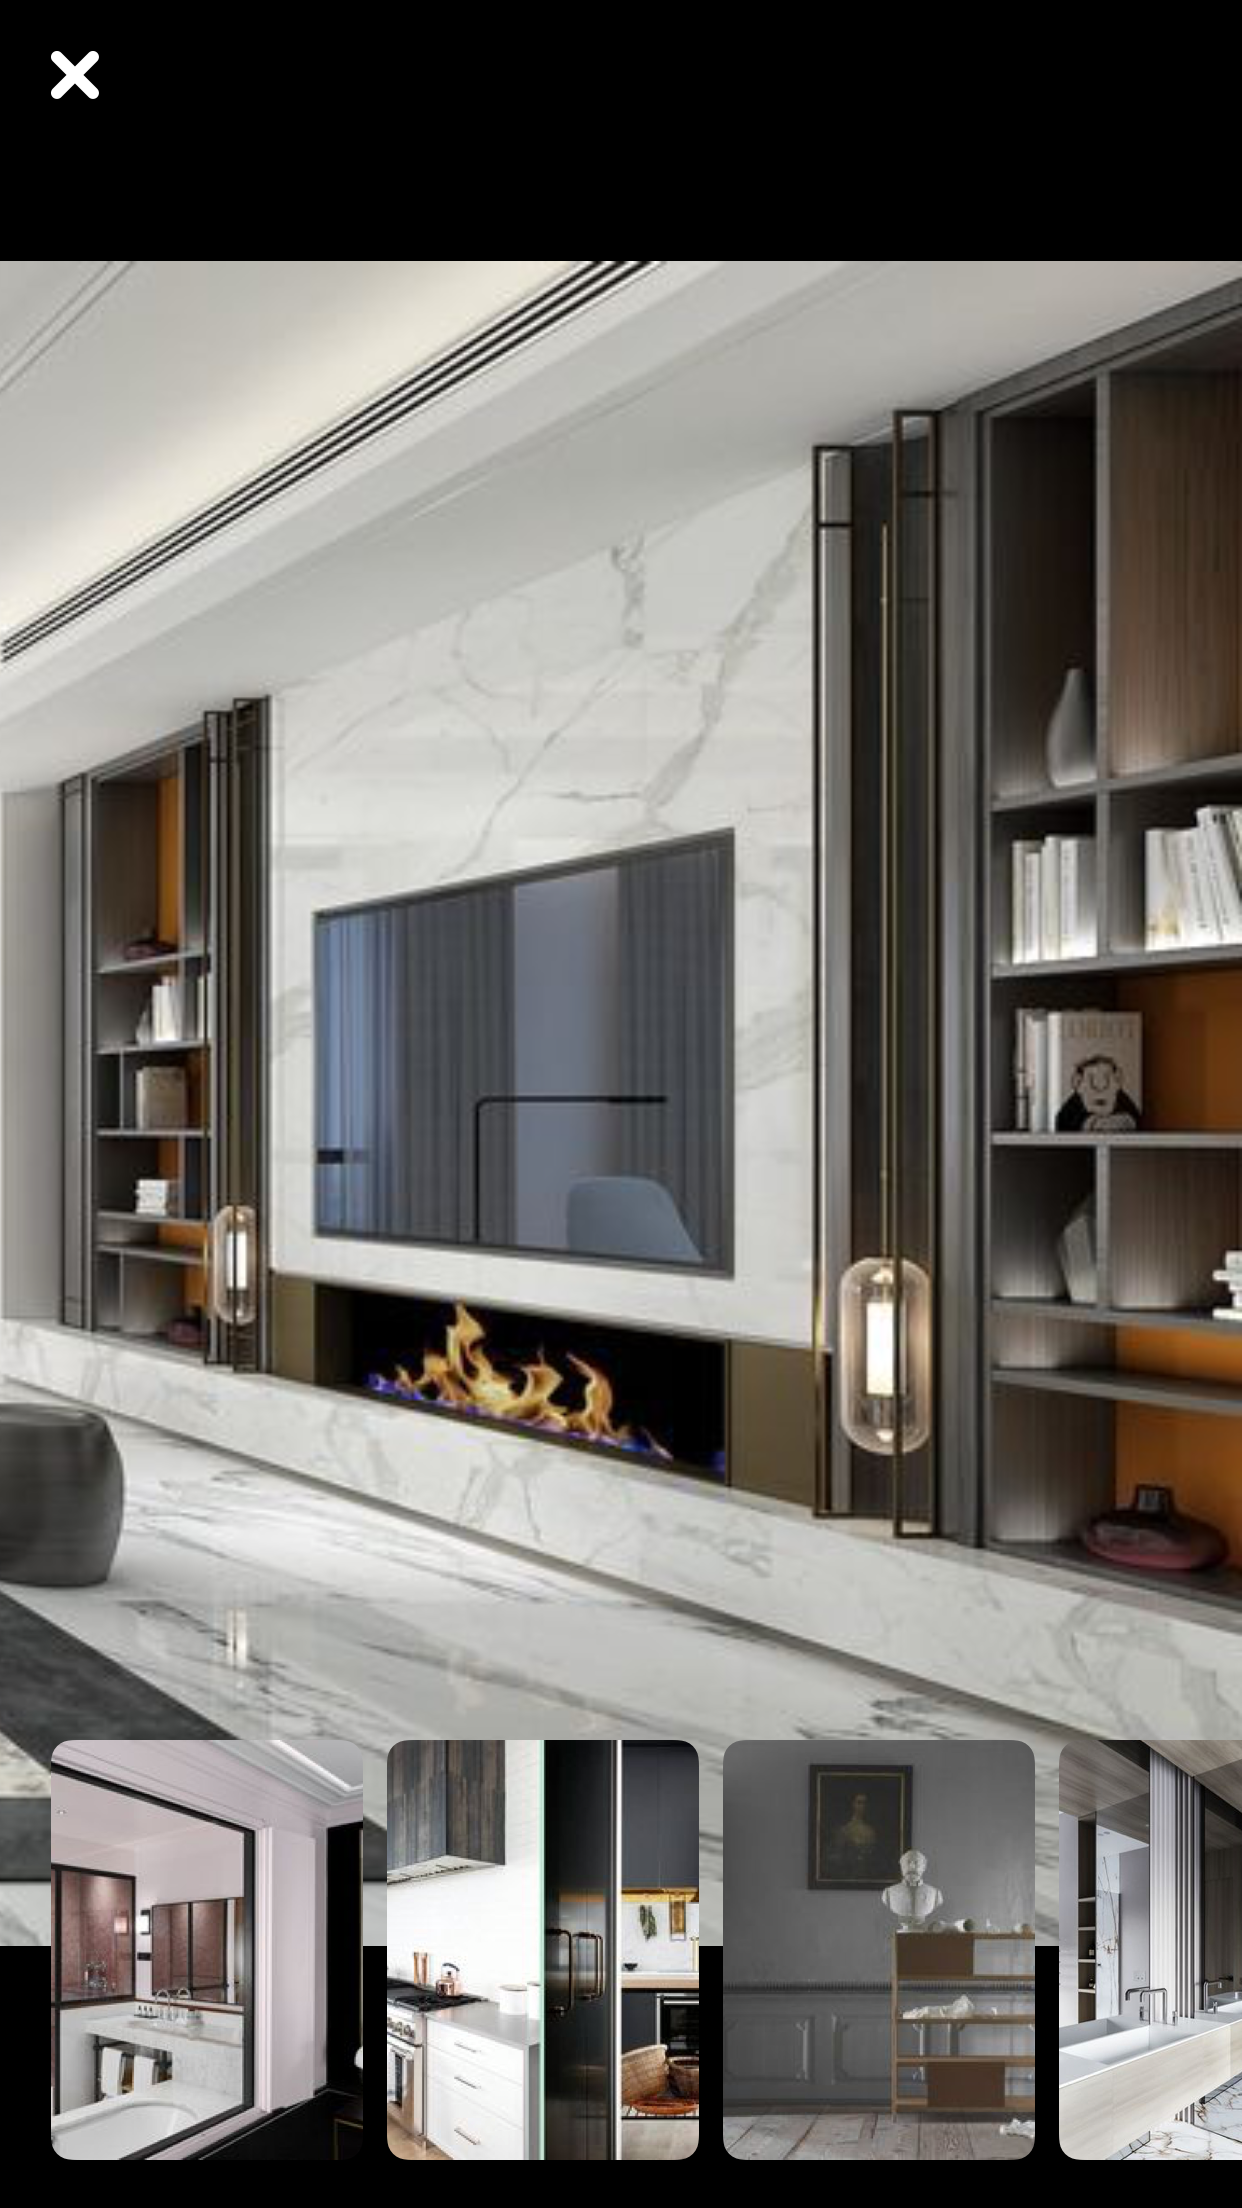 This Is Not Bad The Fireplace Wall/storage In 2019